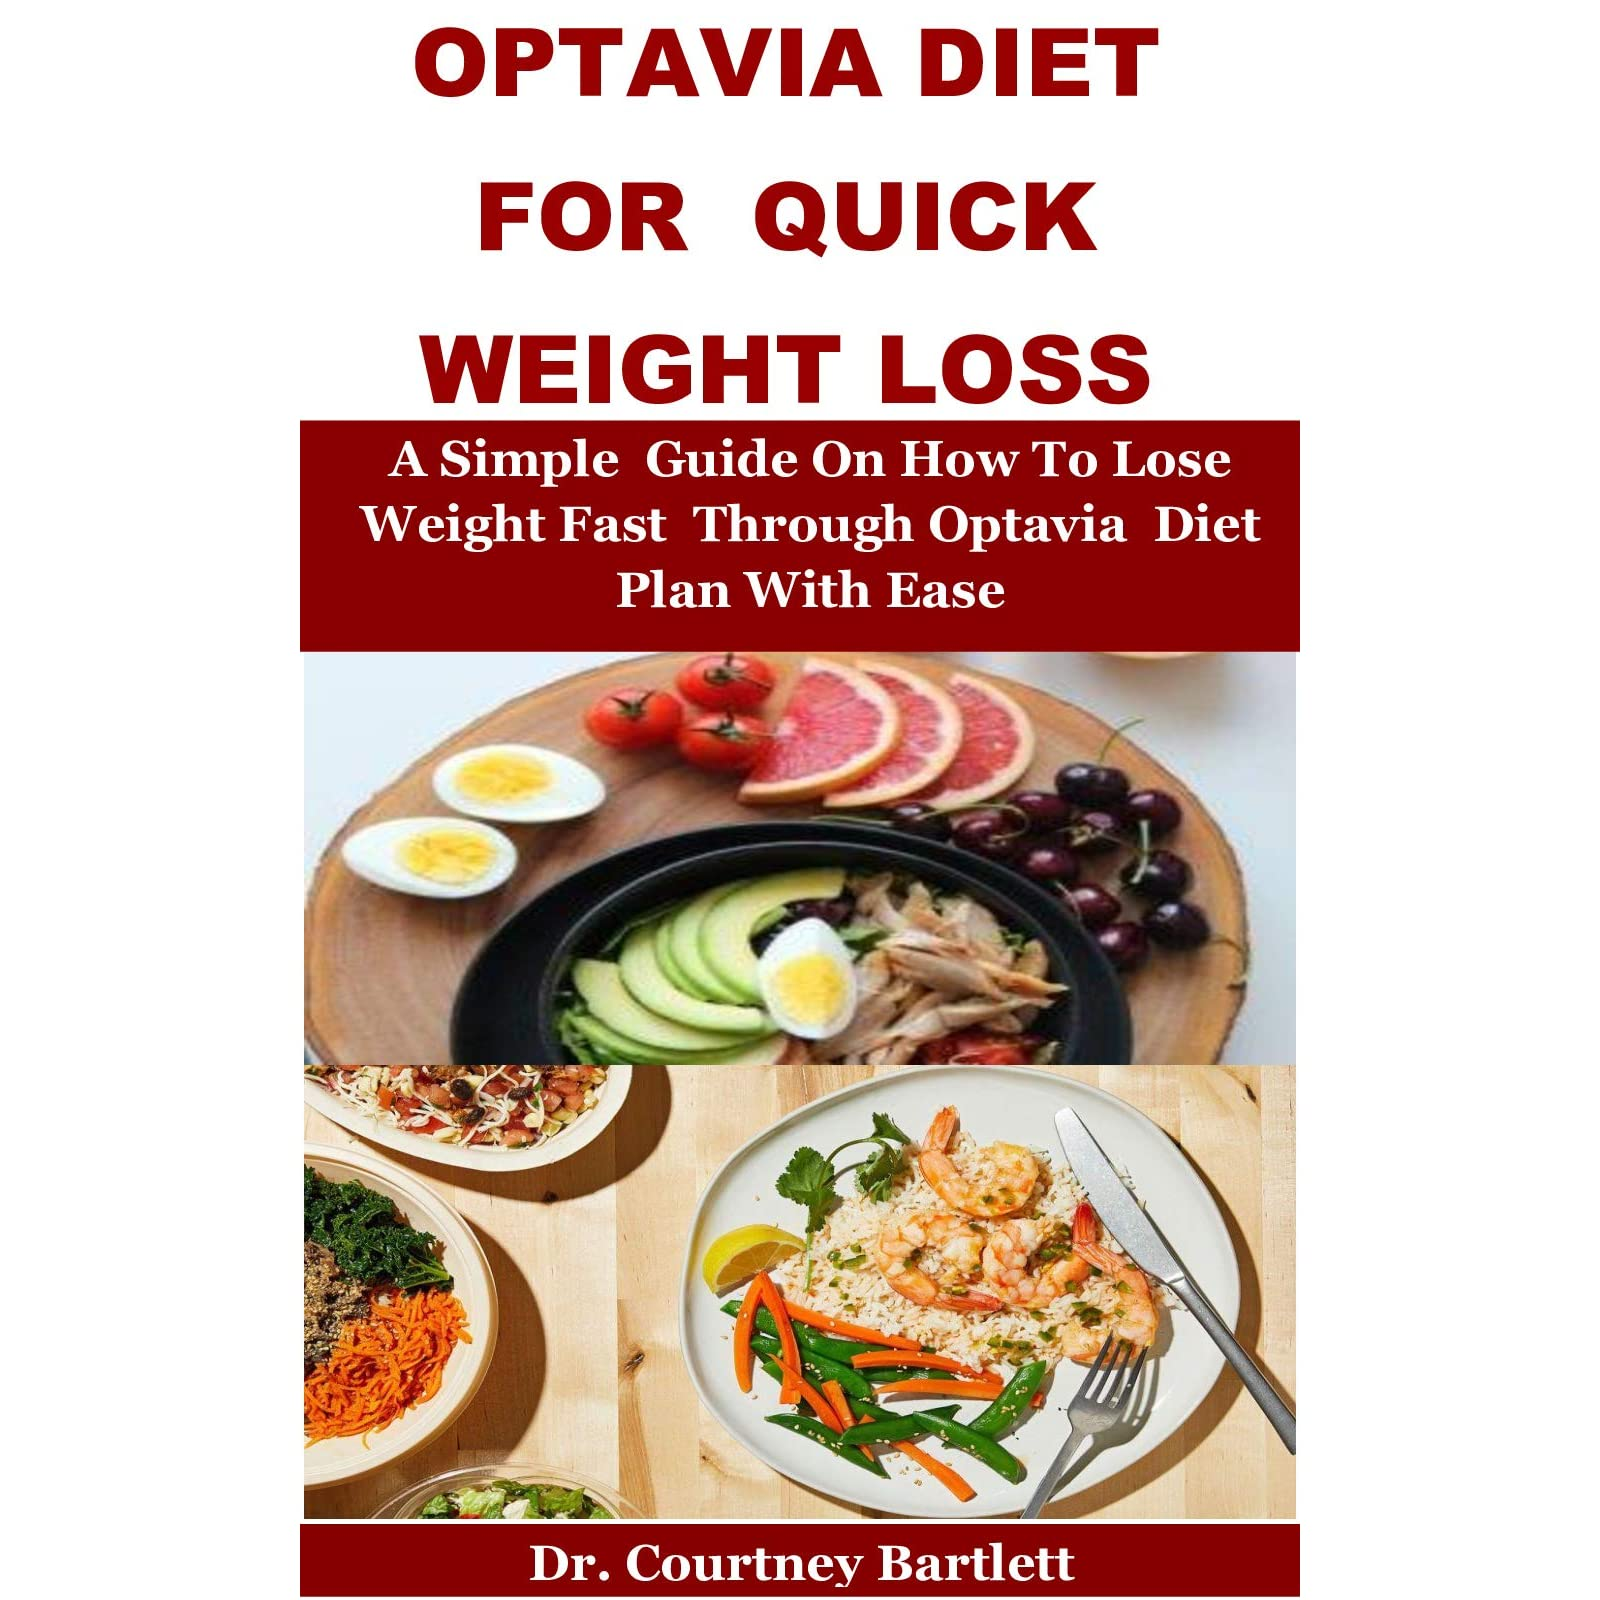 Optavia Diet For Quick Weight Loss With Ease: A Simple Guide On